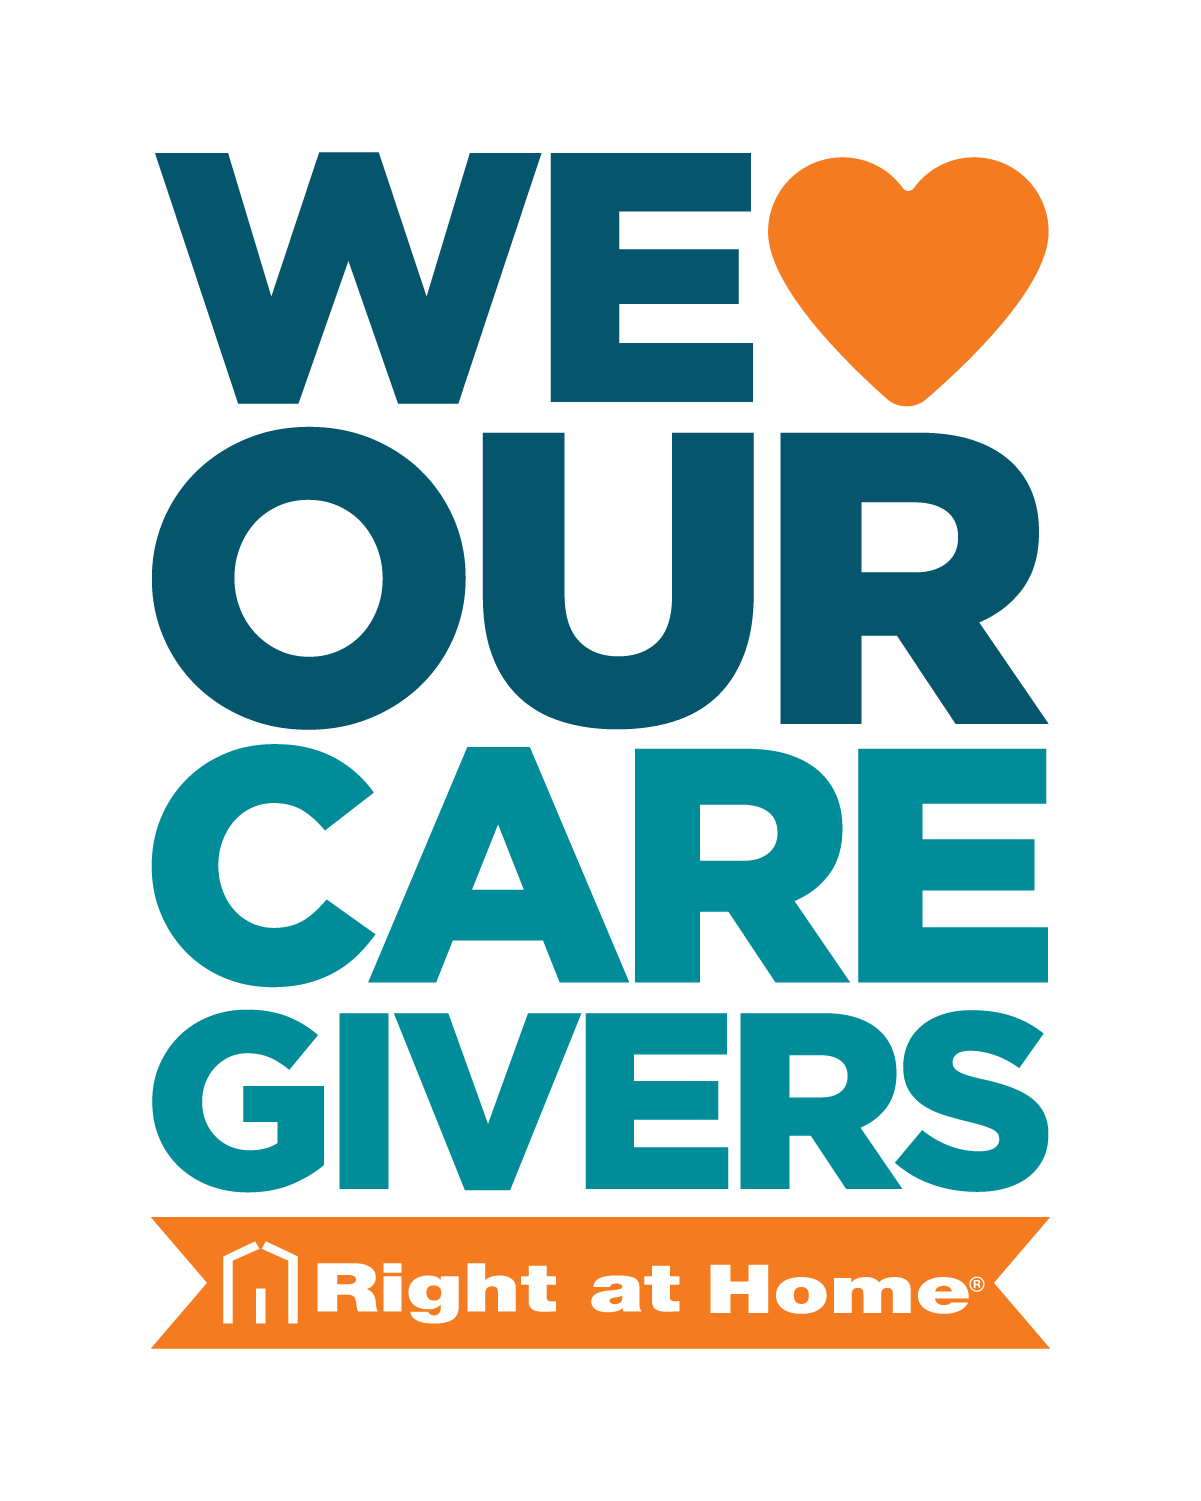 We Love Our Caregivers logo